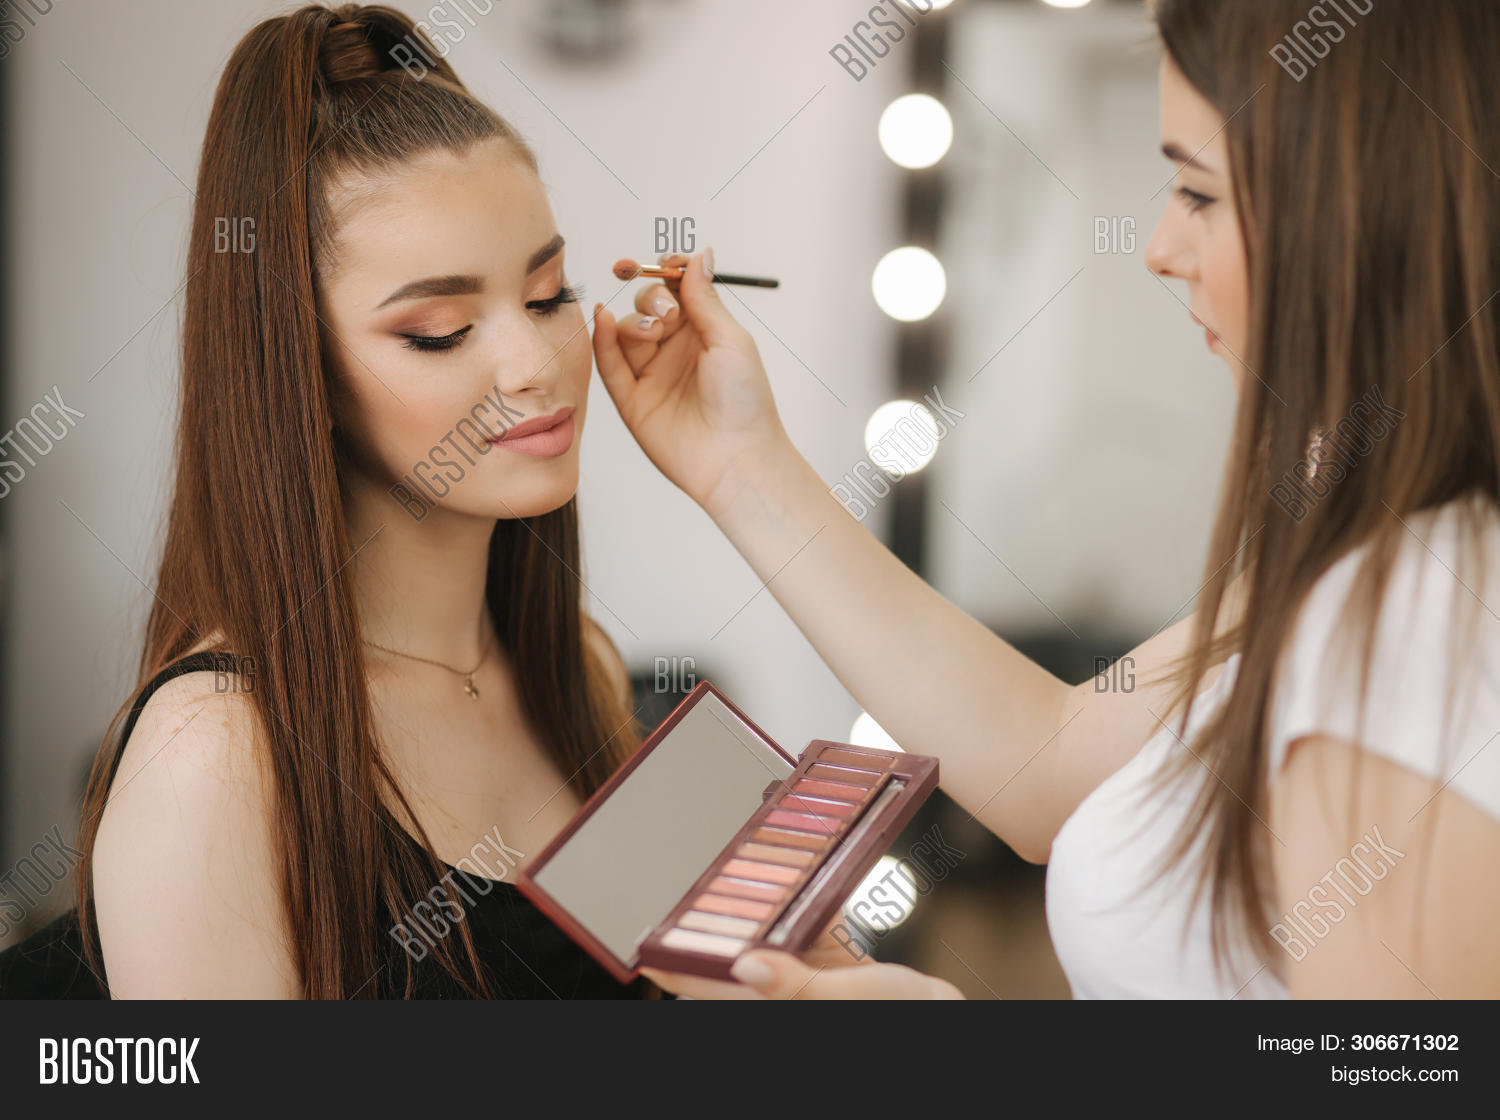 Makeup artist work in her beauty studio. Woman applying by professional make up master. Beautiful make up artist make a makeup for redhead model with freckles. She use a palette